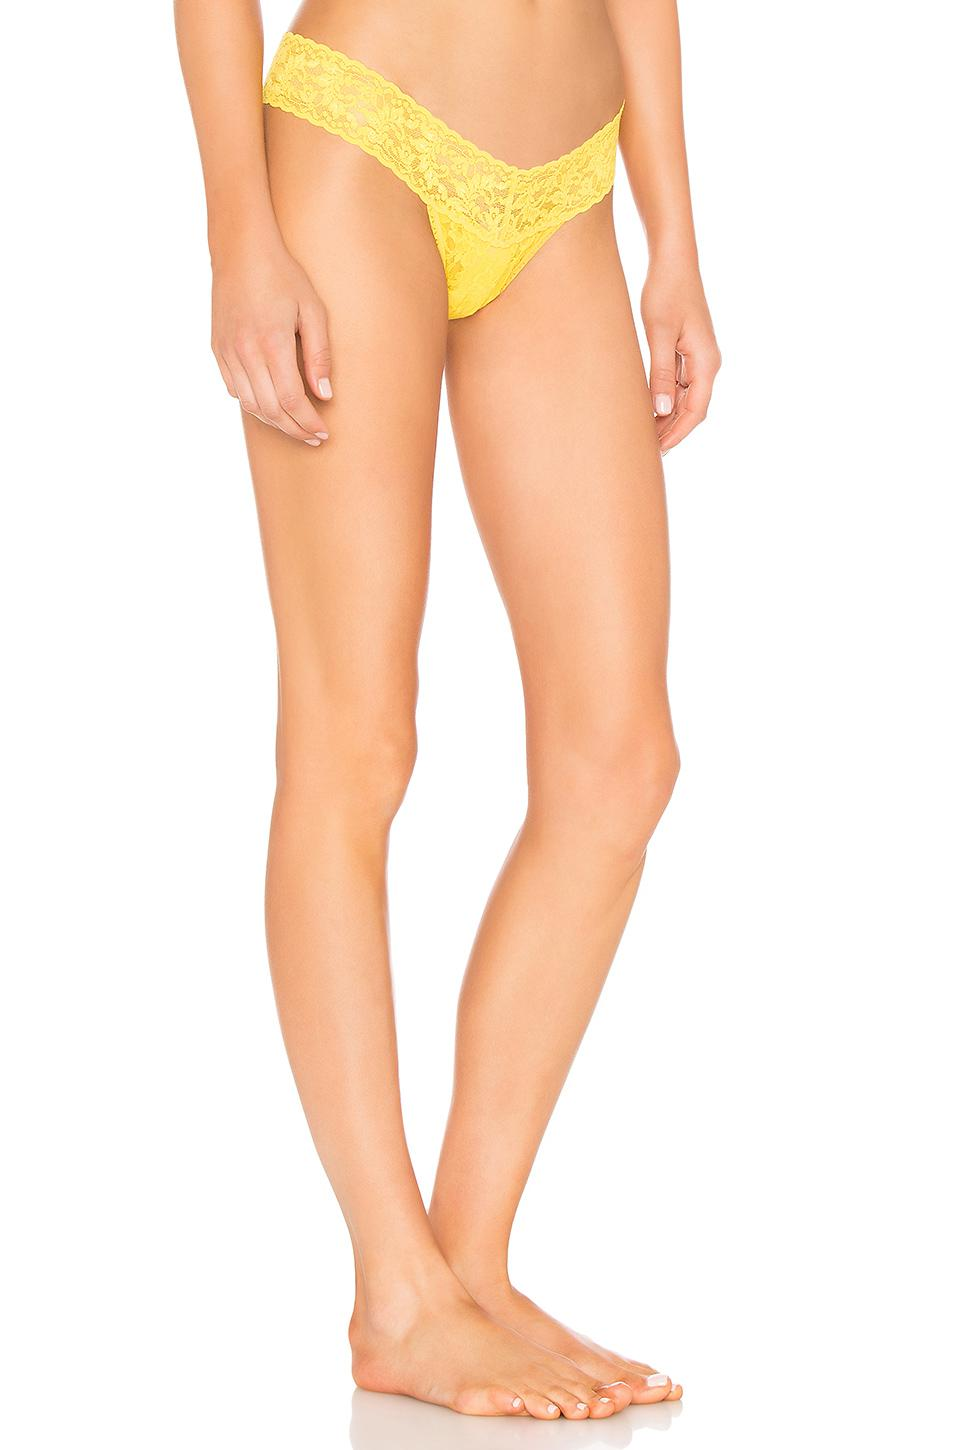 Hanky Panky - Multicolor Low Rise Thong In Yellow. - Lyst. View fullscreen 0a686b516